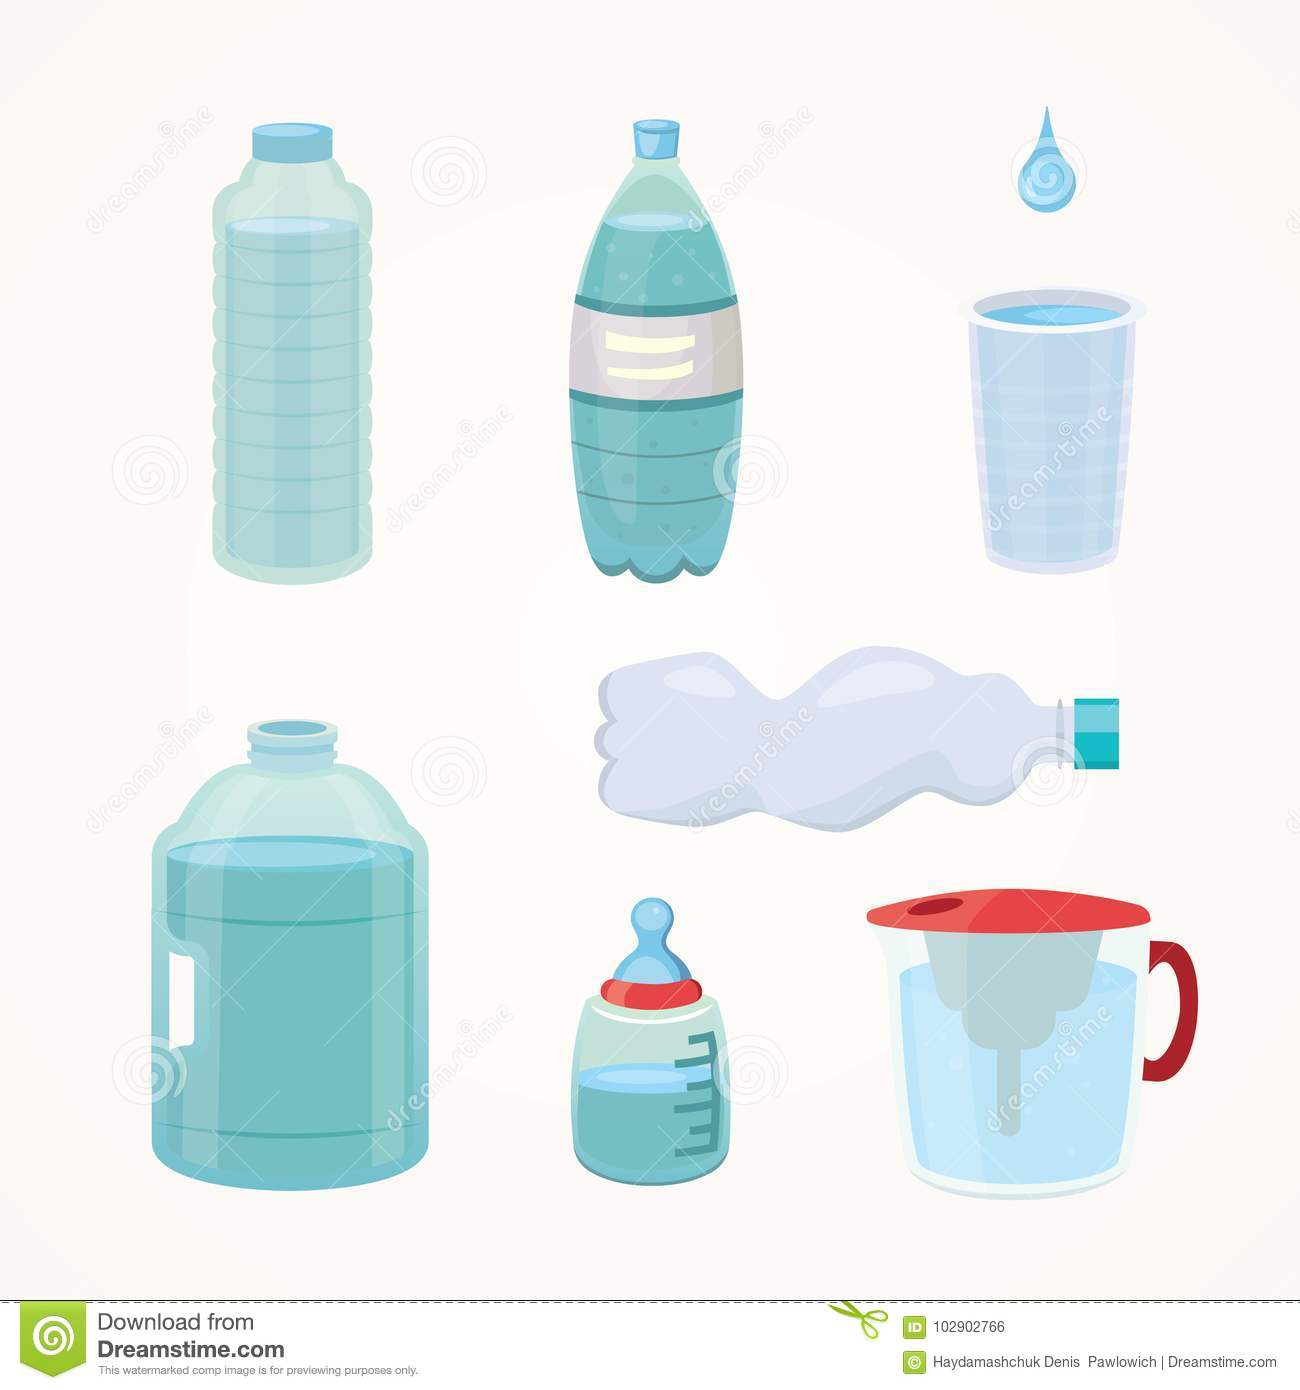 Set Plastic bottle of pure water, different bottle design vector illustration in cartoon style.